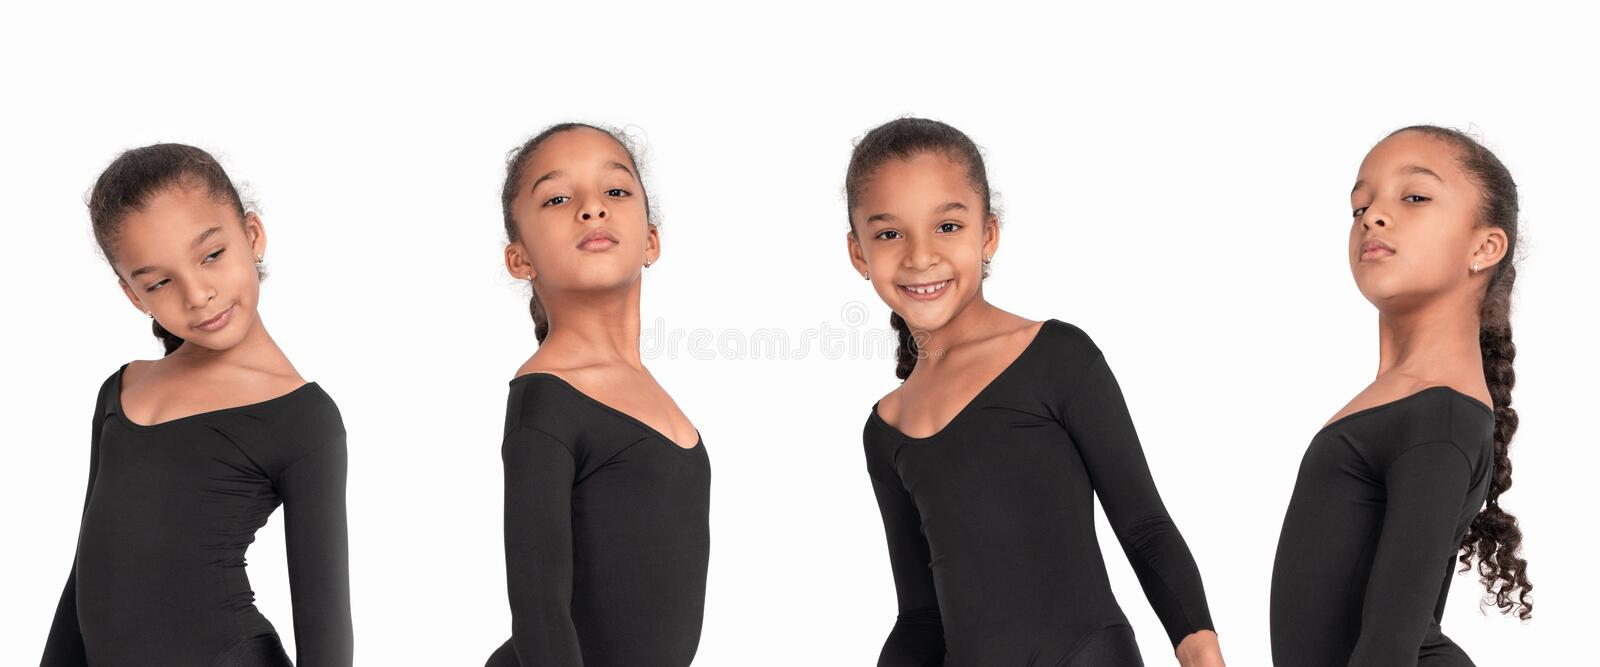 Emotional waist up portraits of the young girl of the mulatto in a gymnastic suit on a white background in studio stock photo